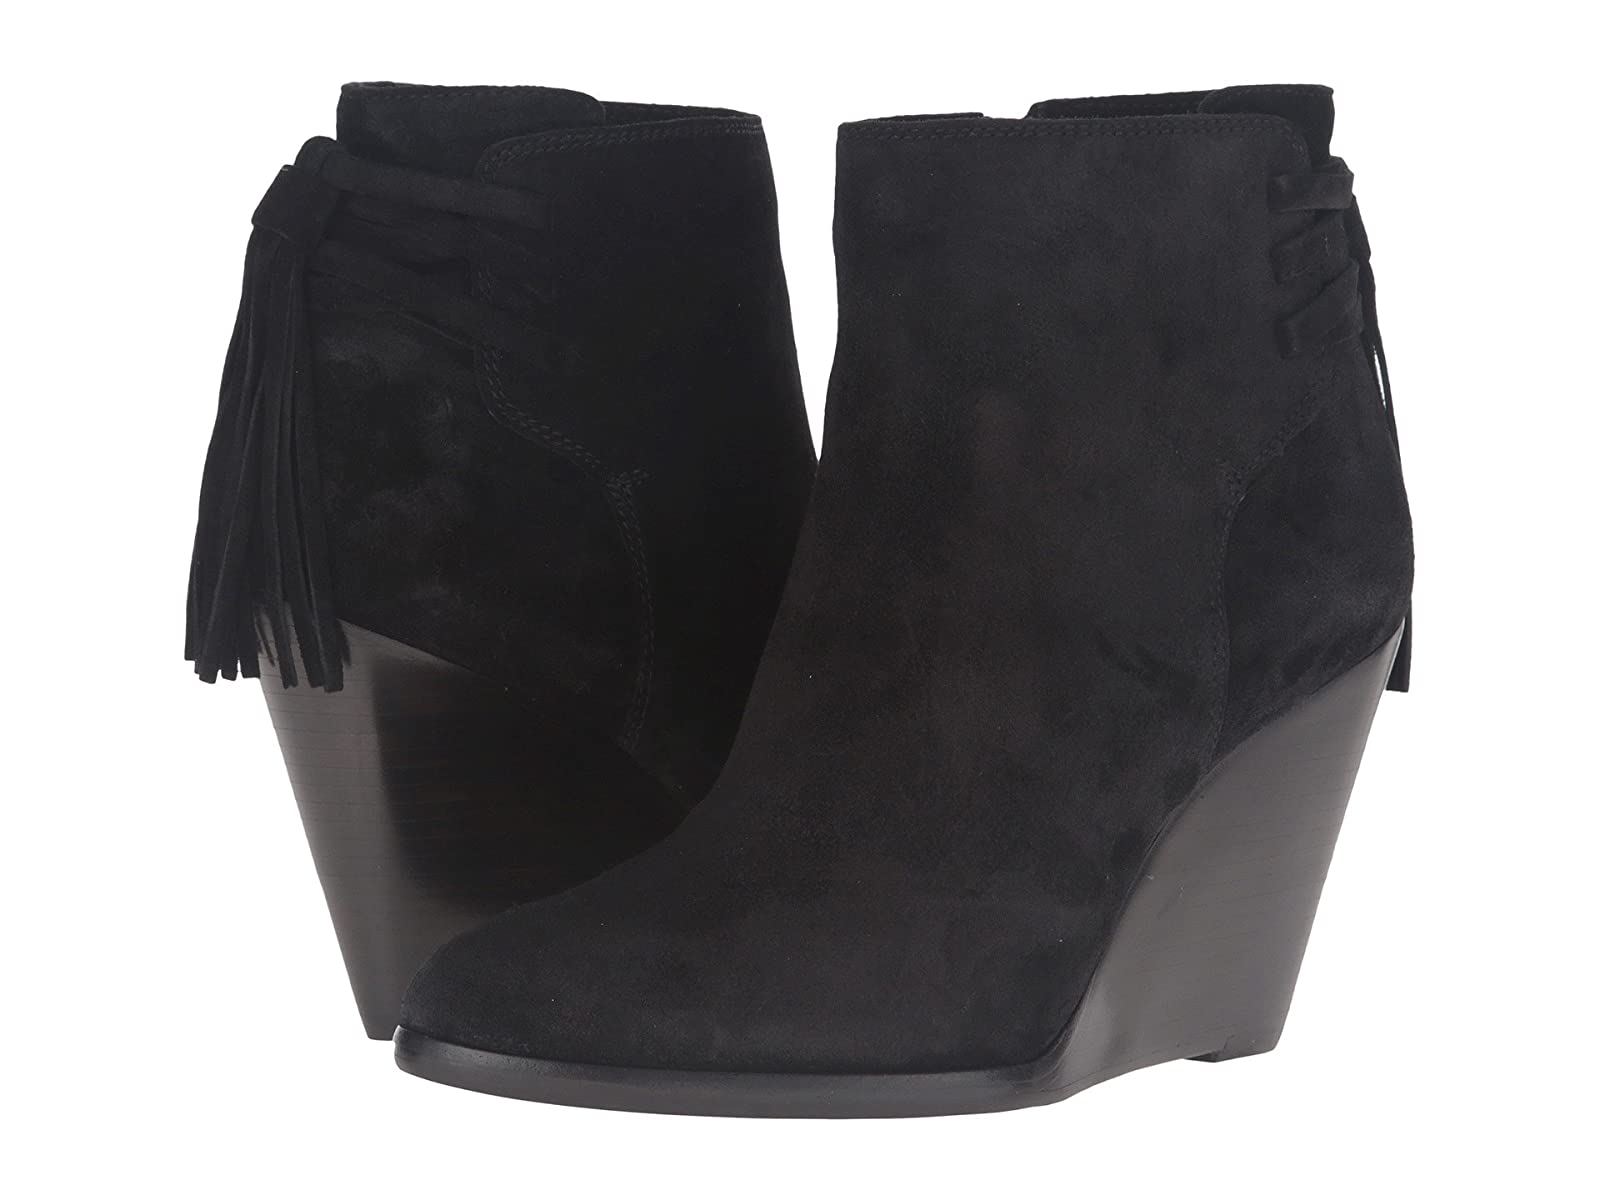 Frye Cece Tassel LaceCheap and distinctive eye-catching shoes